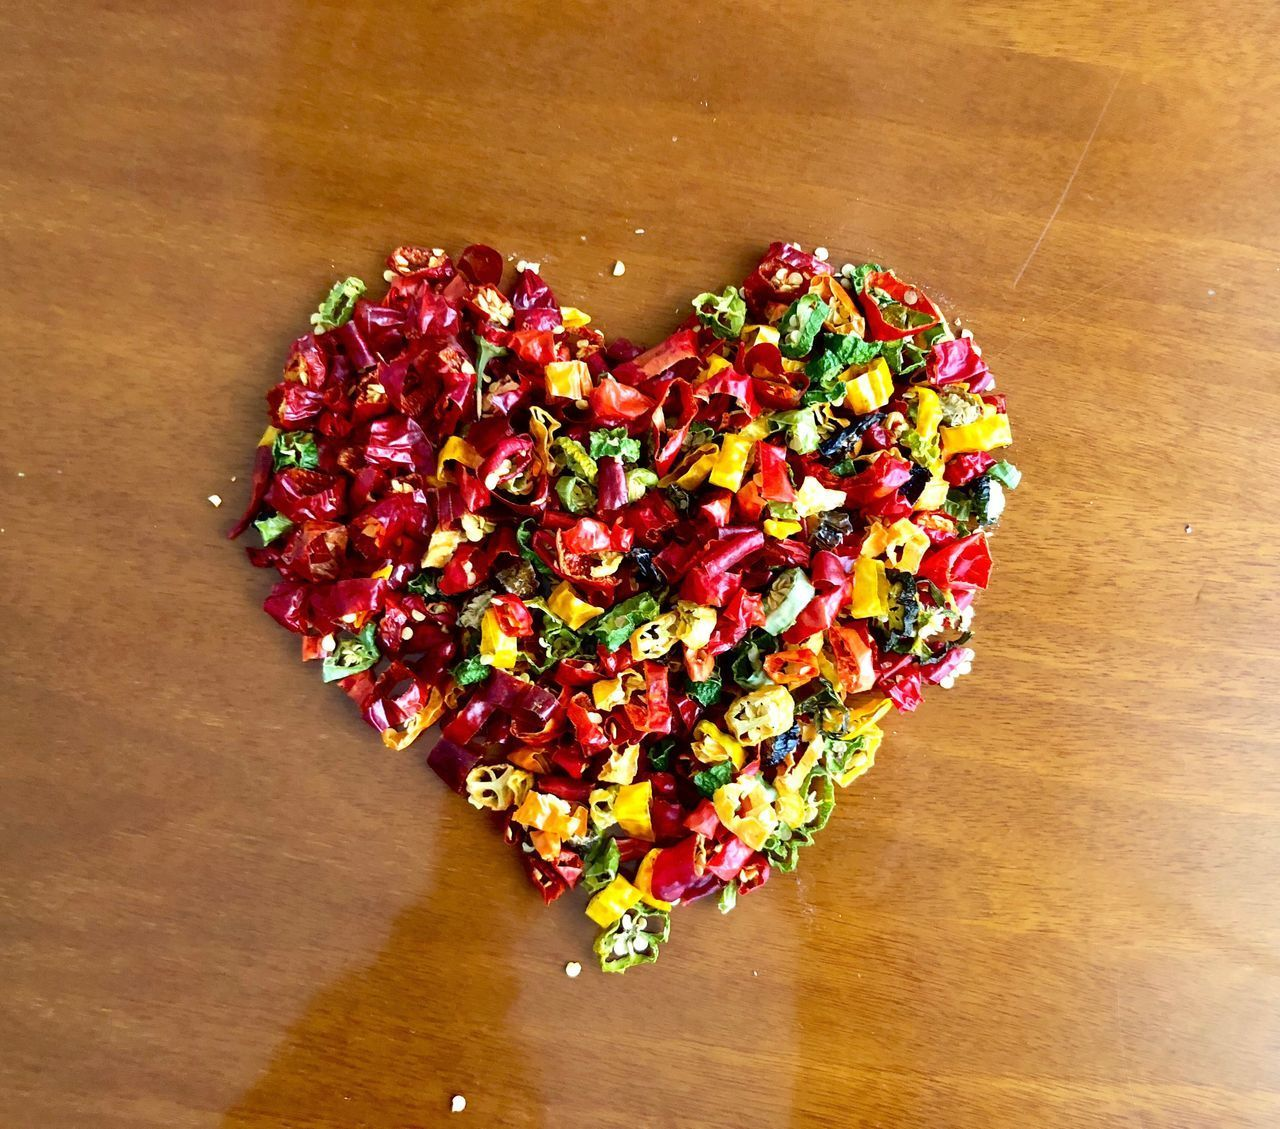 DIRECTLY ABOVE SHOT OF MULTI COLORED HEART SHAPED ON TABLE